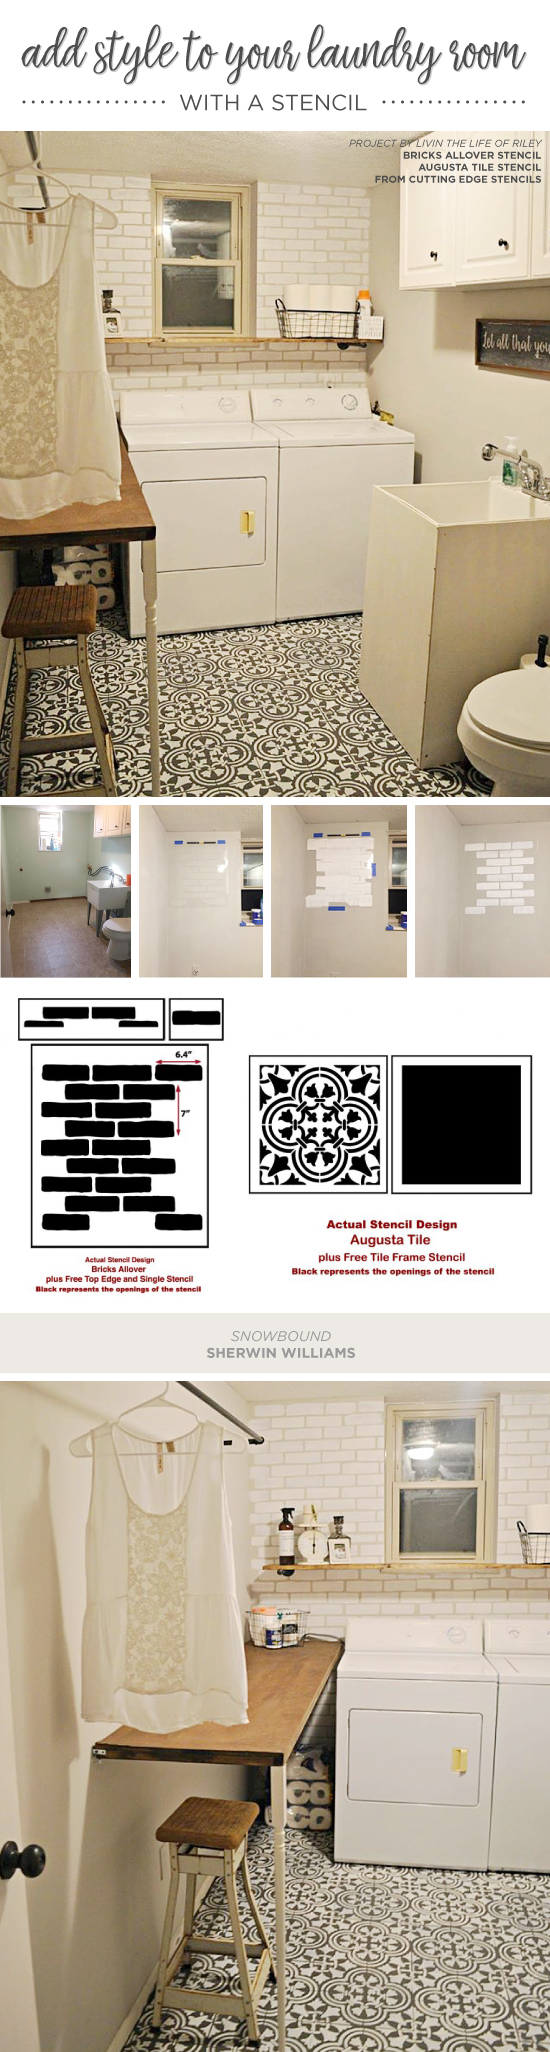 Add style to your laundry room with a stencil stencil stories cutting edge stencils shares a diy stenciled laundry room accent wall that achieves a subway tile amipublicfo Images